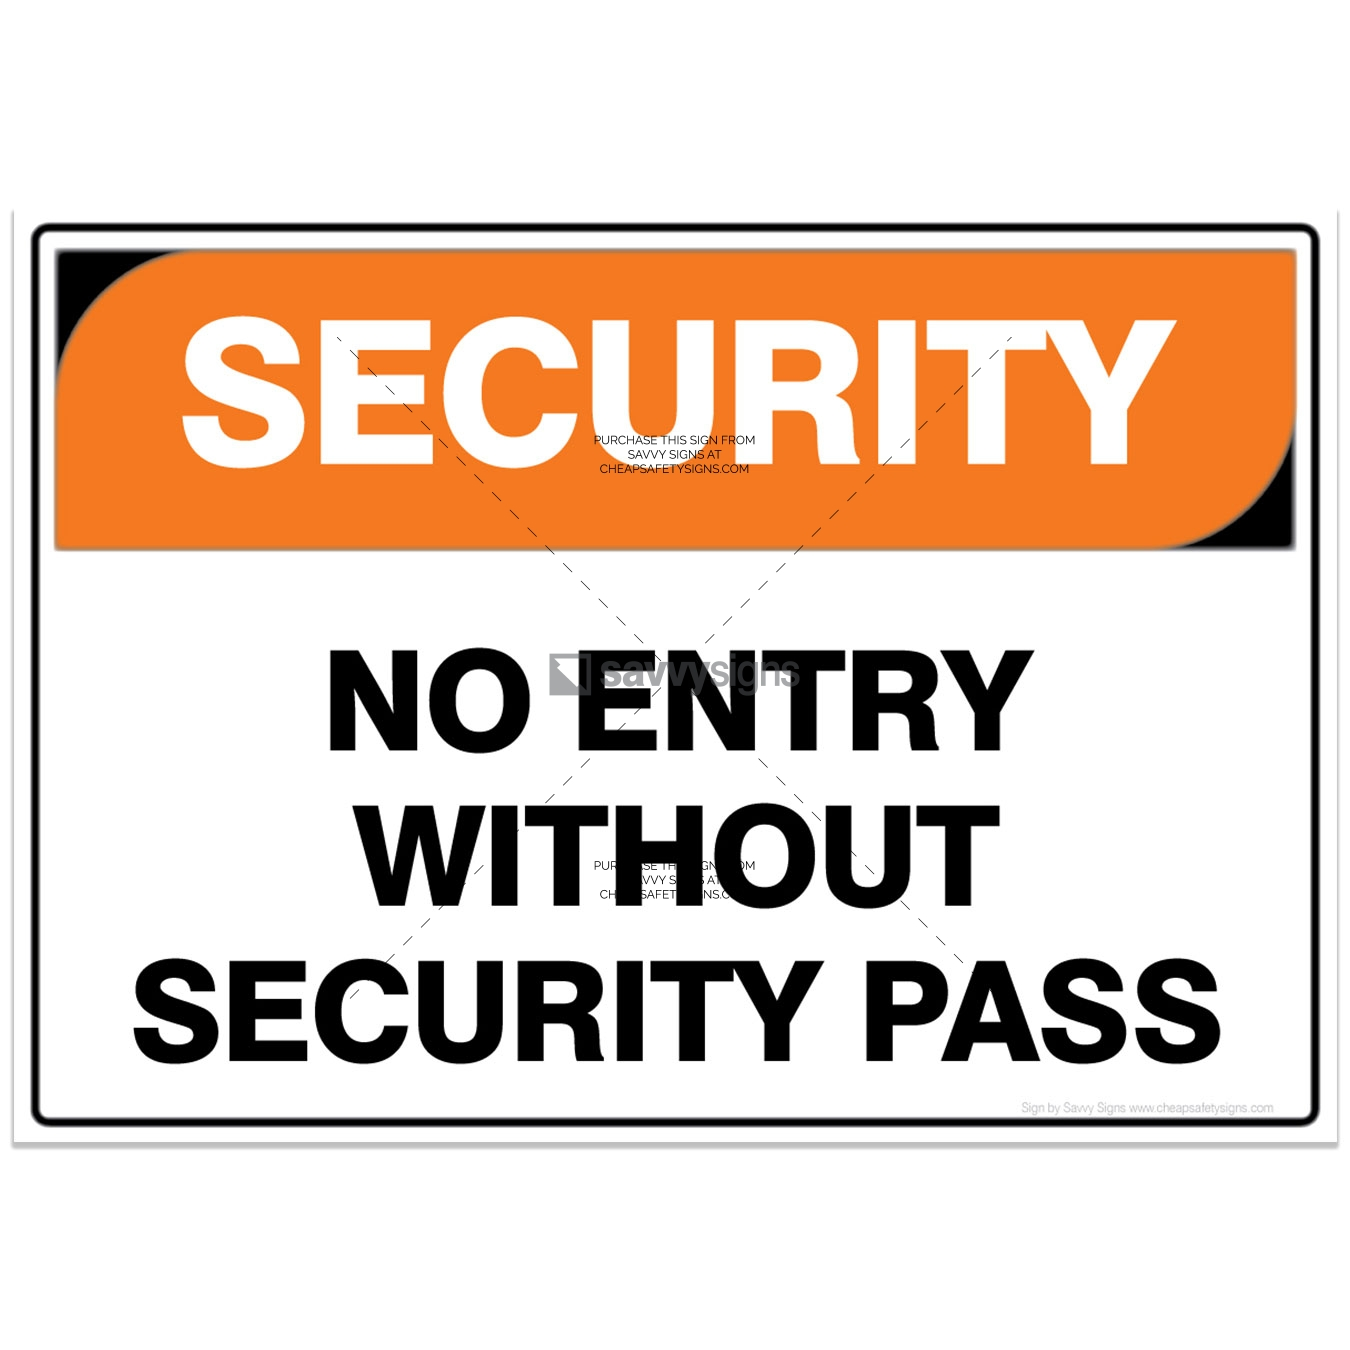 SSSEC3014-SECURITY-Workplace-Safety-Signs_Savvy-Signs_v3